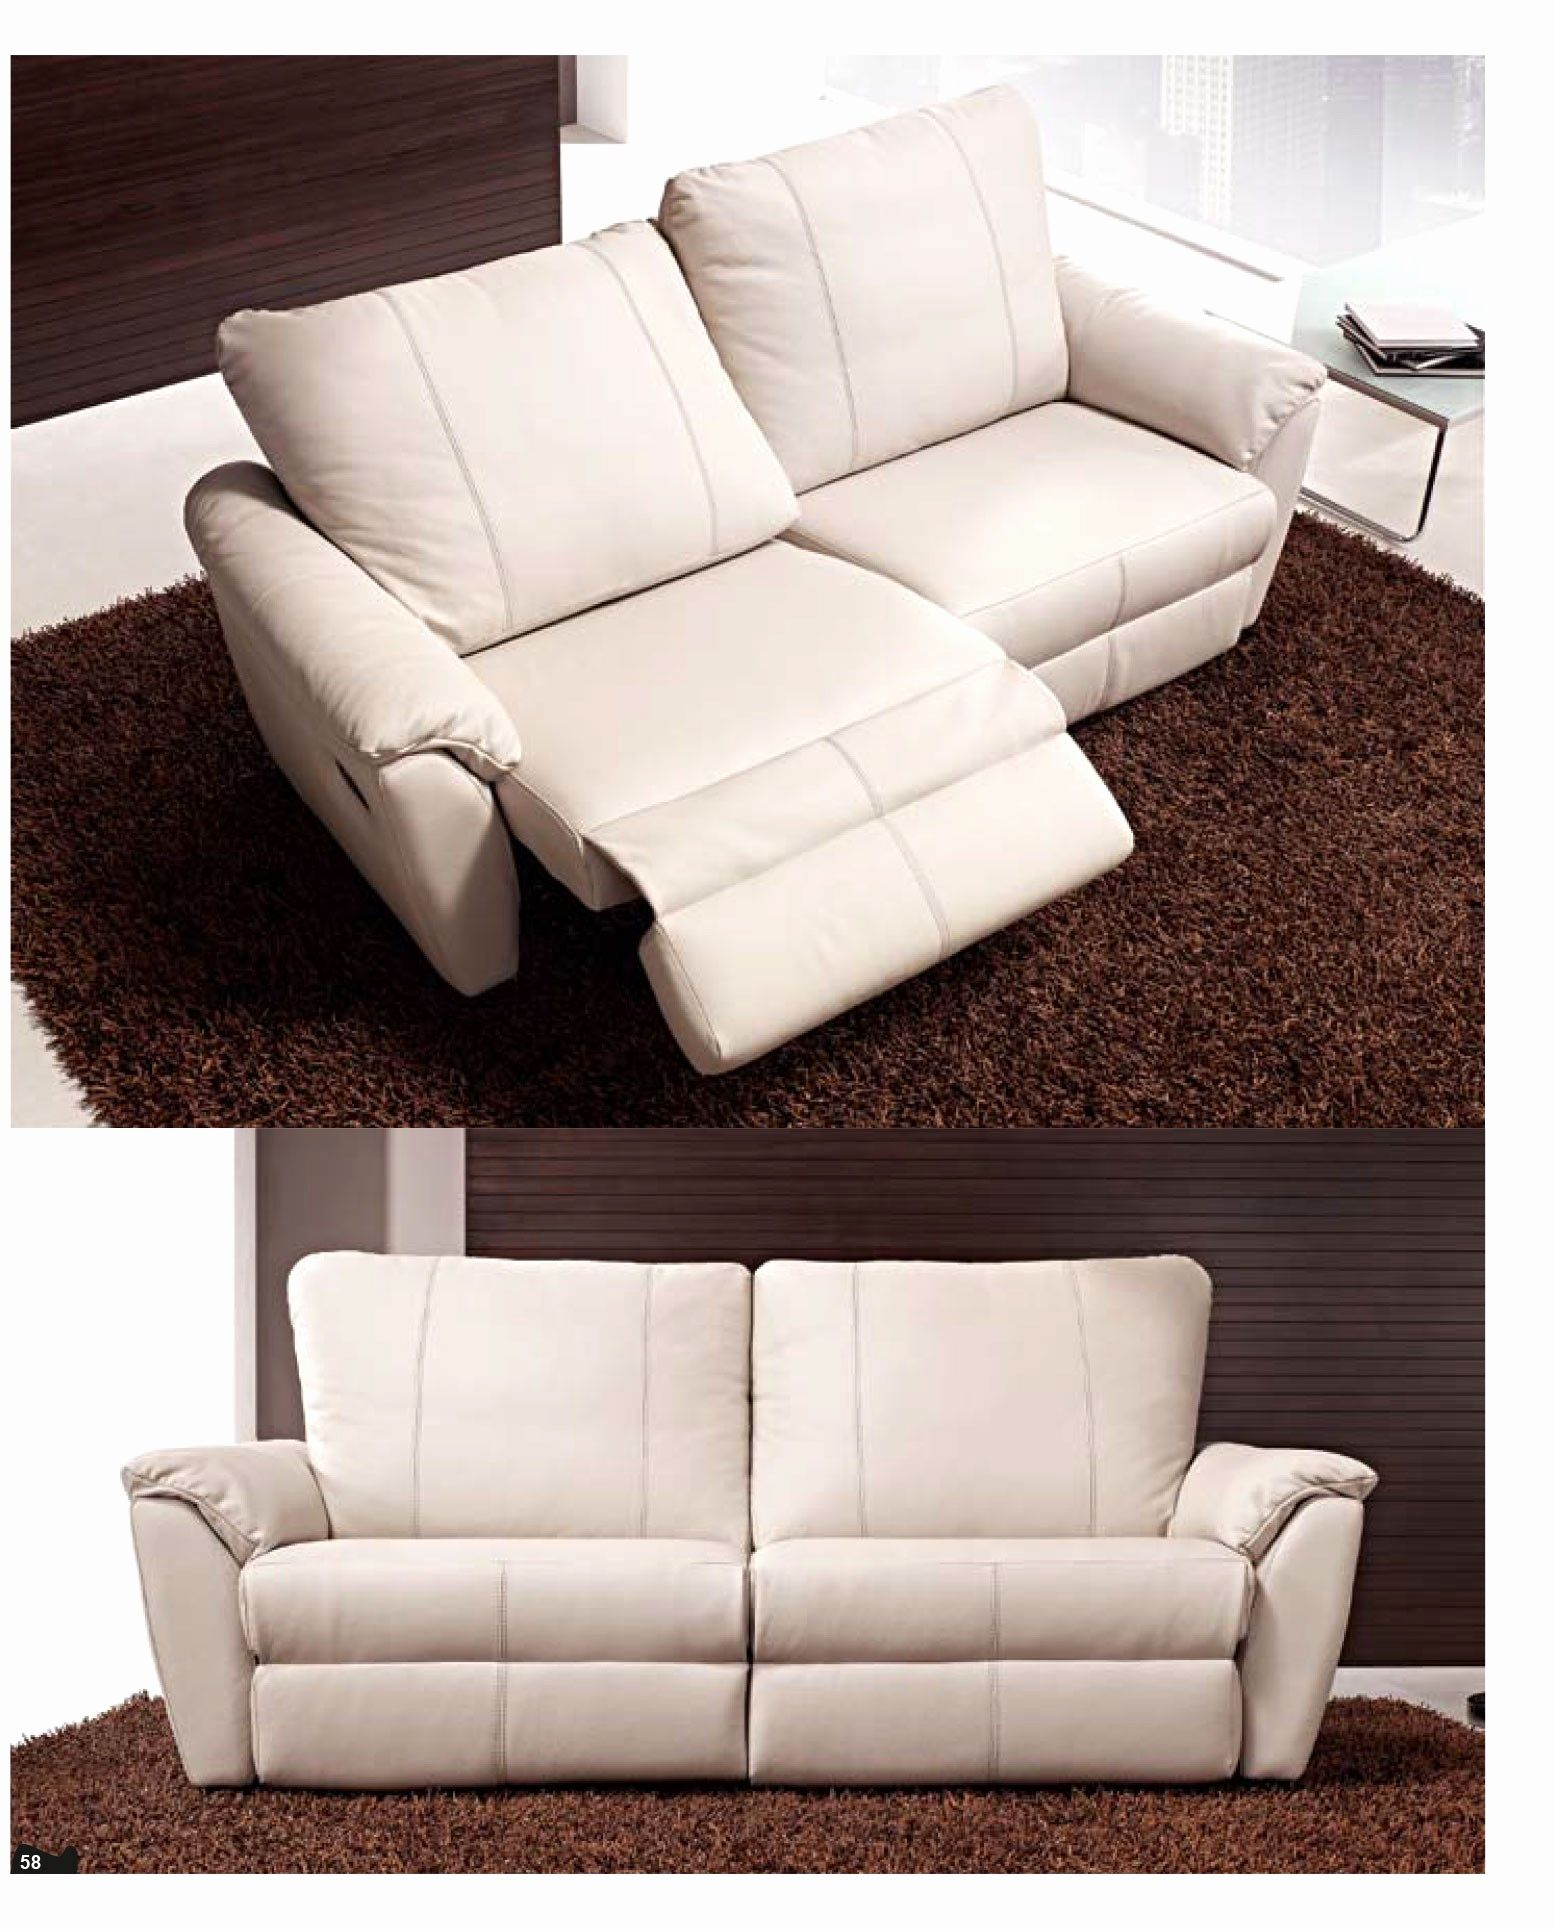 Elegant Contemporary Reclining Sofas Photograpy Contemporary Reclining Sofas New Sofa Marv Modern Reclining Loveseat Modern Leather Loveseat Furniture Loveseat